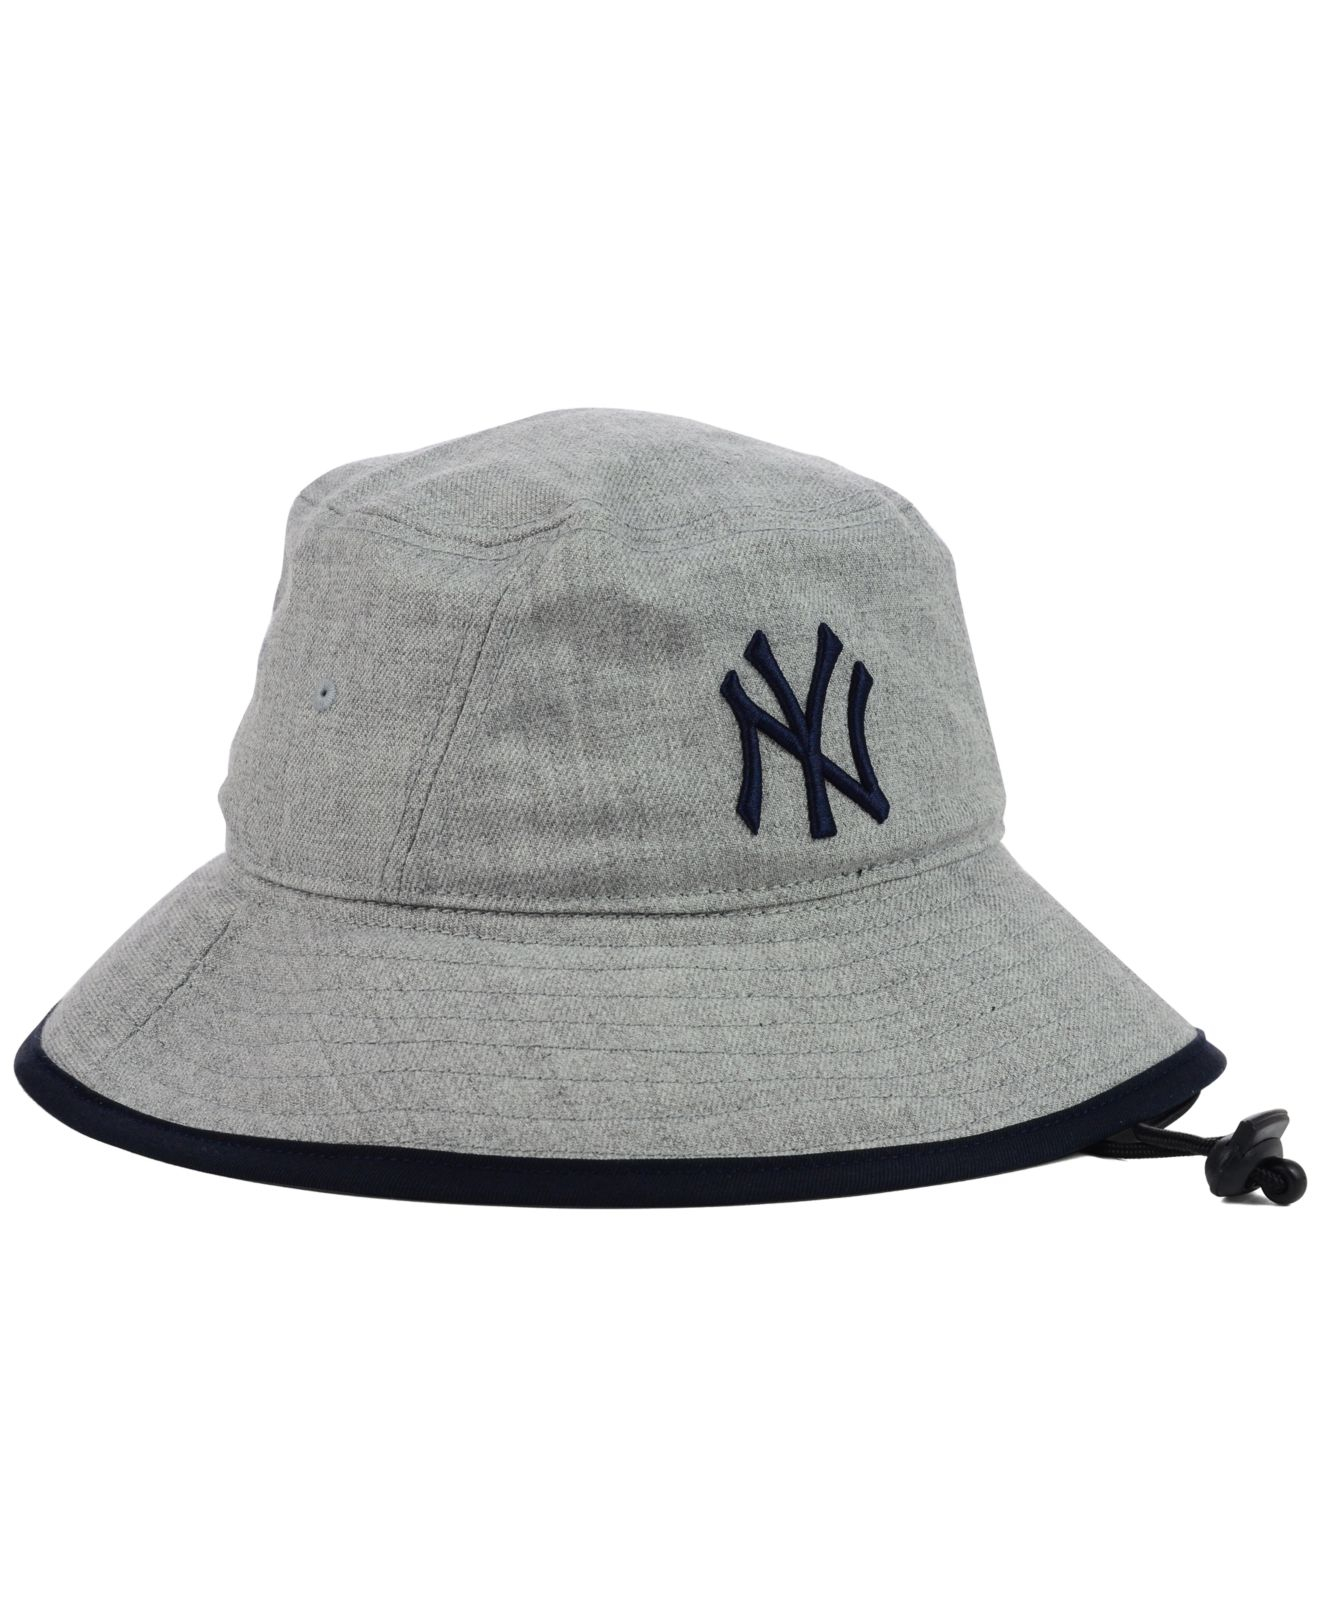 01f0ebd2d3272 ... inexpensive lyst ktz new york yankees heather tipped bucket hat in gray  for men 7f301 5595a